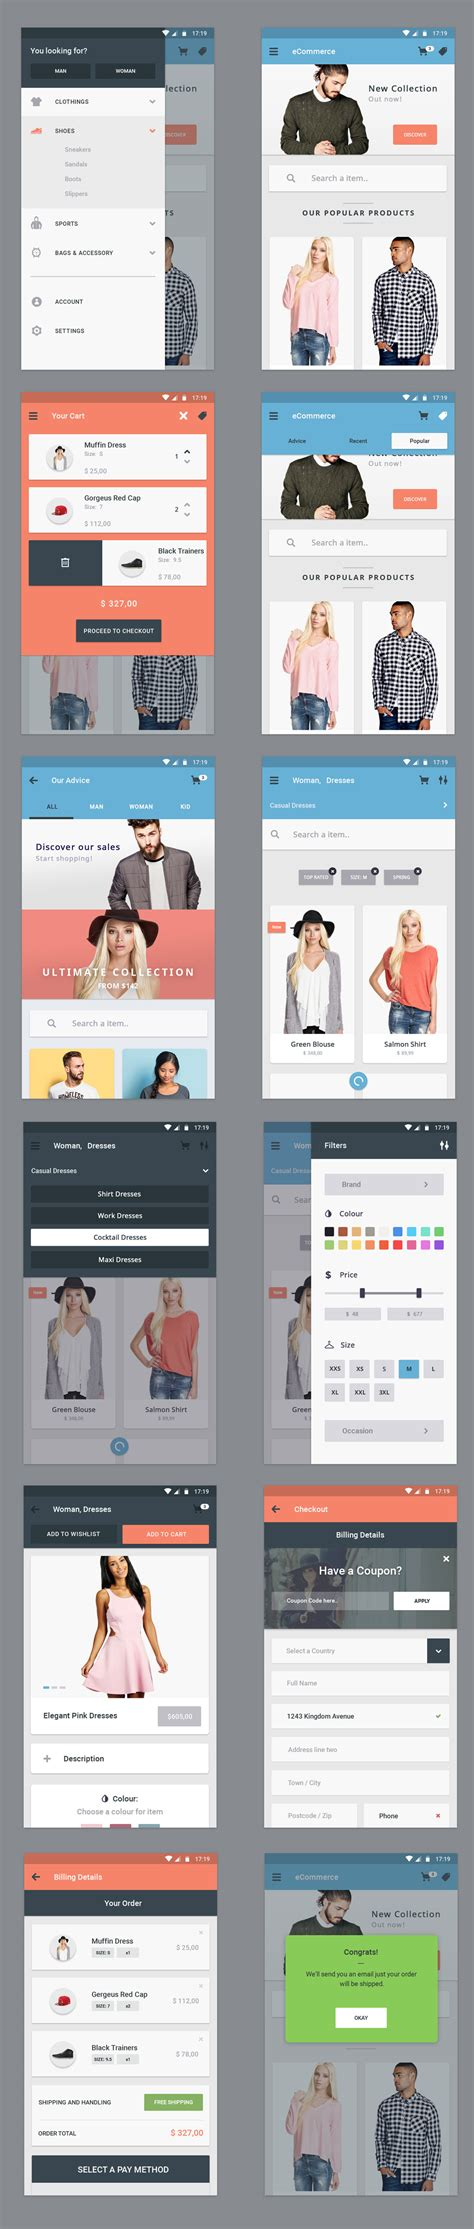 app home screen design inspiration free ecommerce app ui designs 12 app screen 72pxdesigns